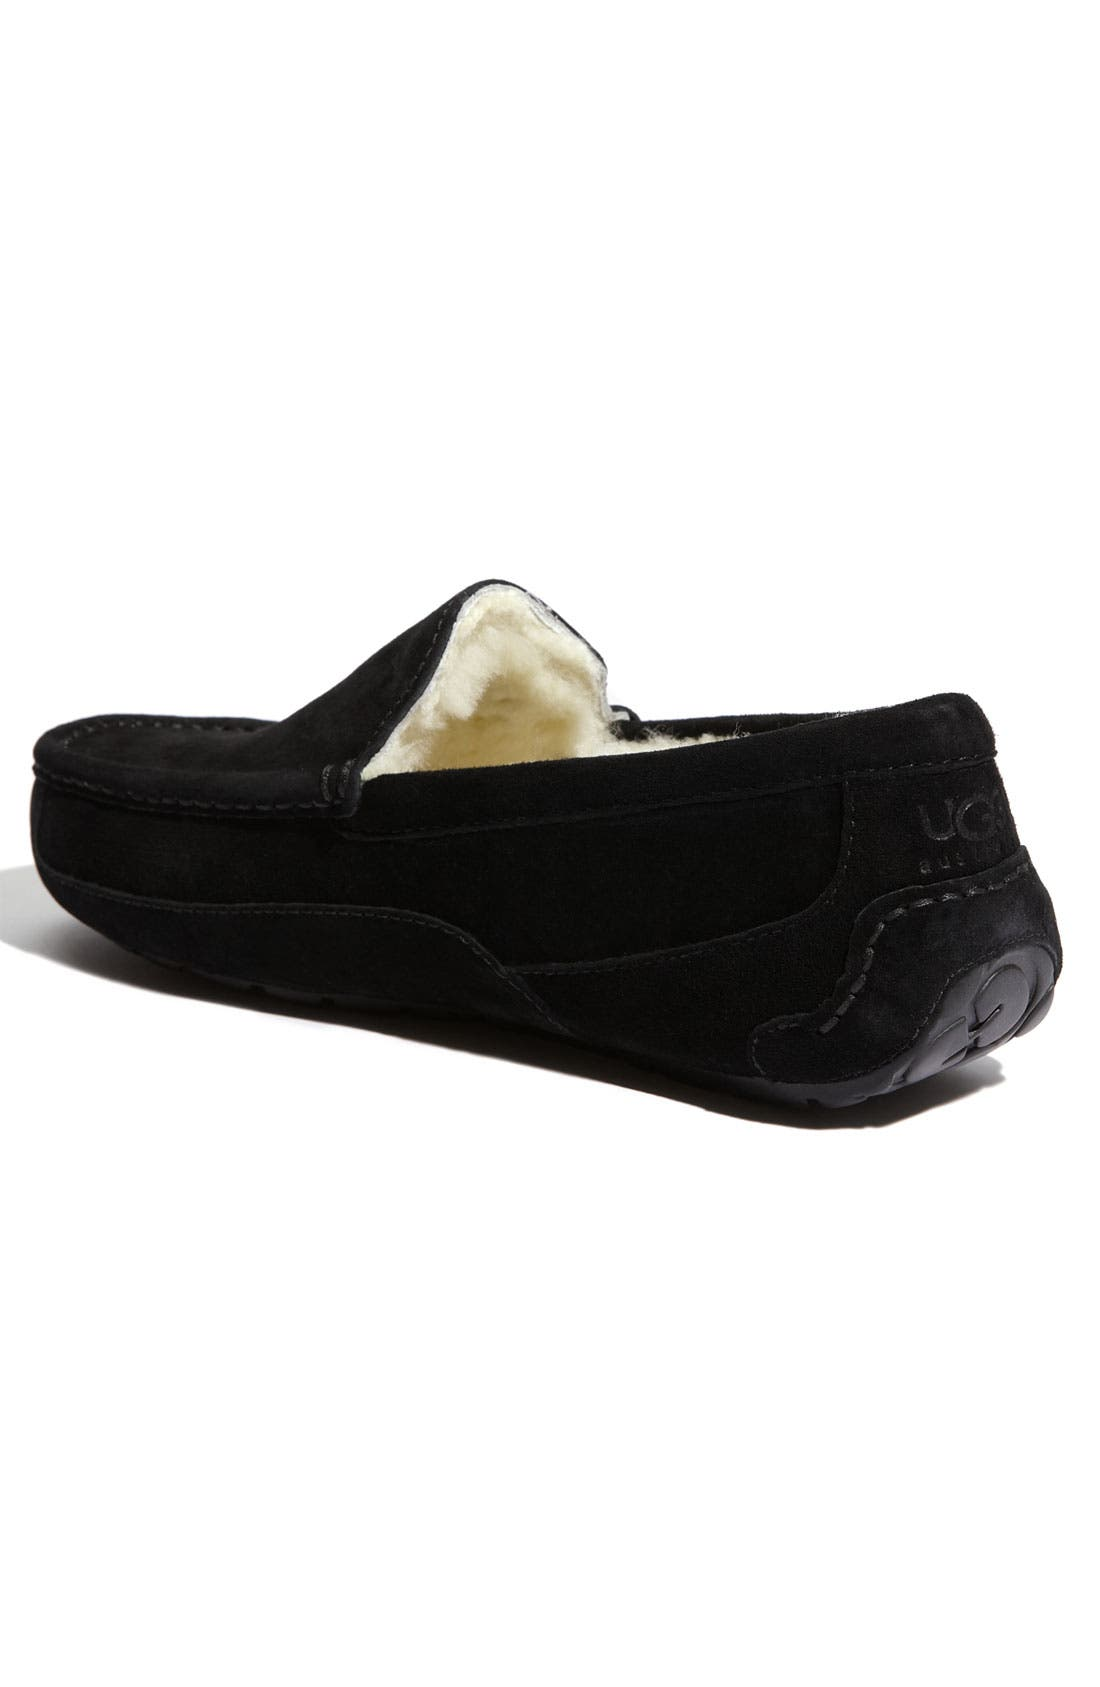 UGG<SUP>®</SUP>, Ascot Suede Slipper, Alternate thumbnail 5, color, BLACK SUEDE